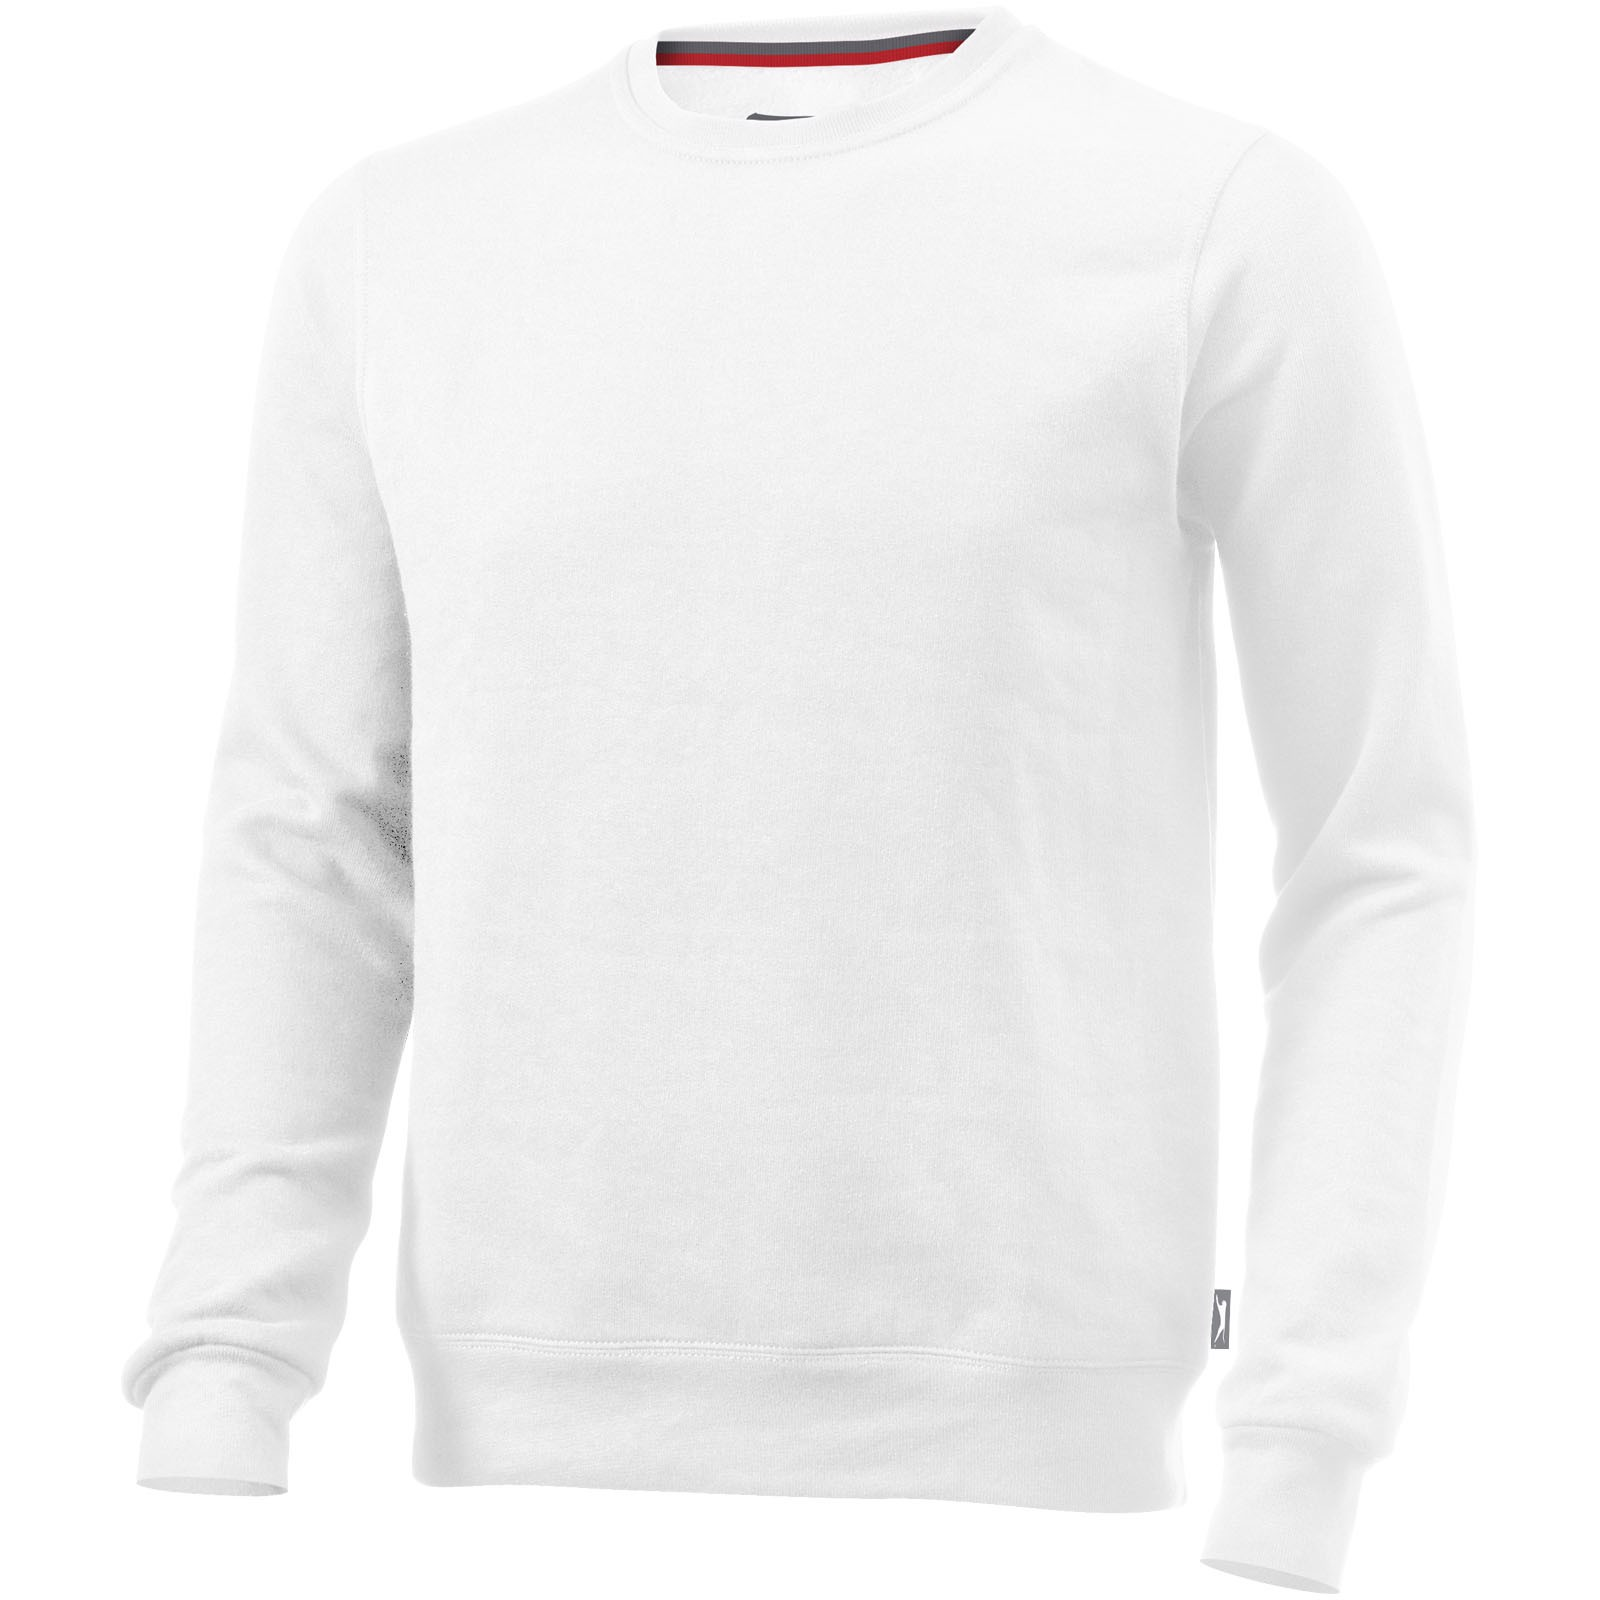 Toss crew neck sweater - White / M